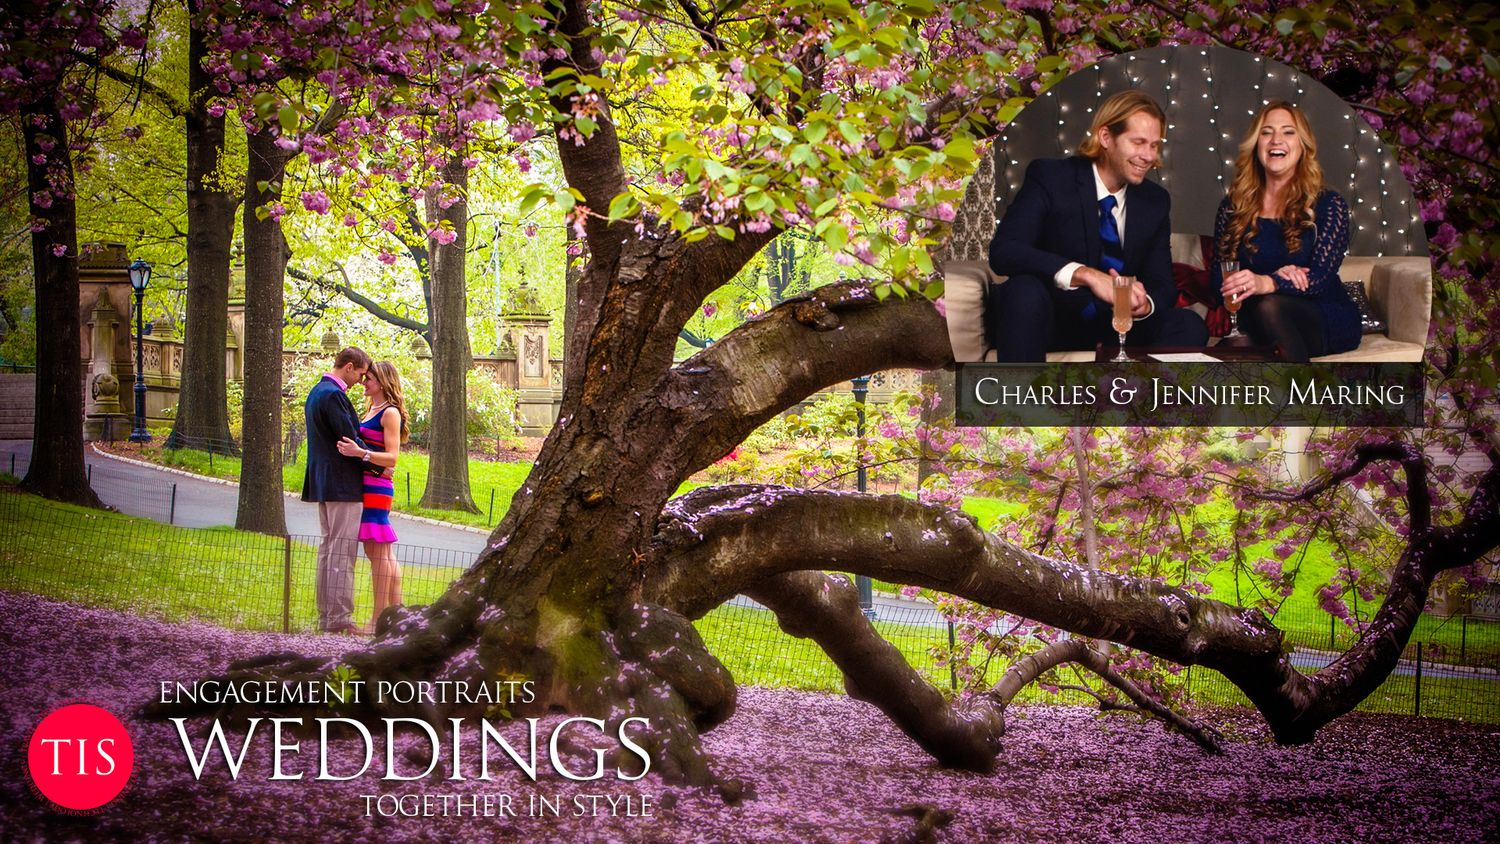 WEDDINGS — Engagement Portaits Together In Style - A Talk Show hosted by Charles and Jennifer Maring at www.togetherinstyle.com